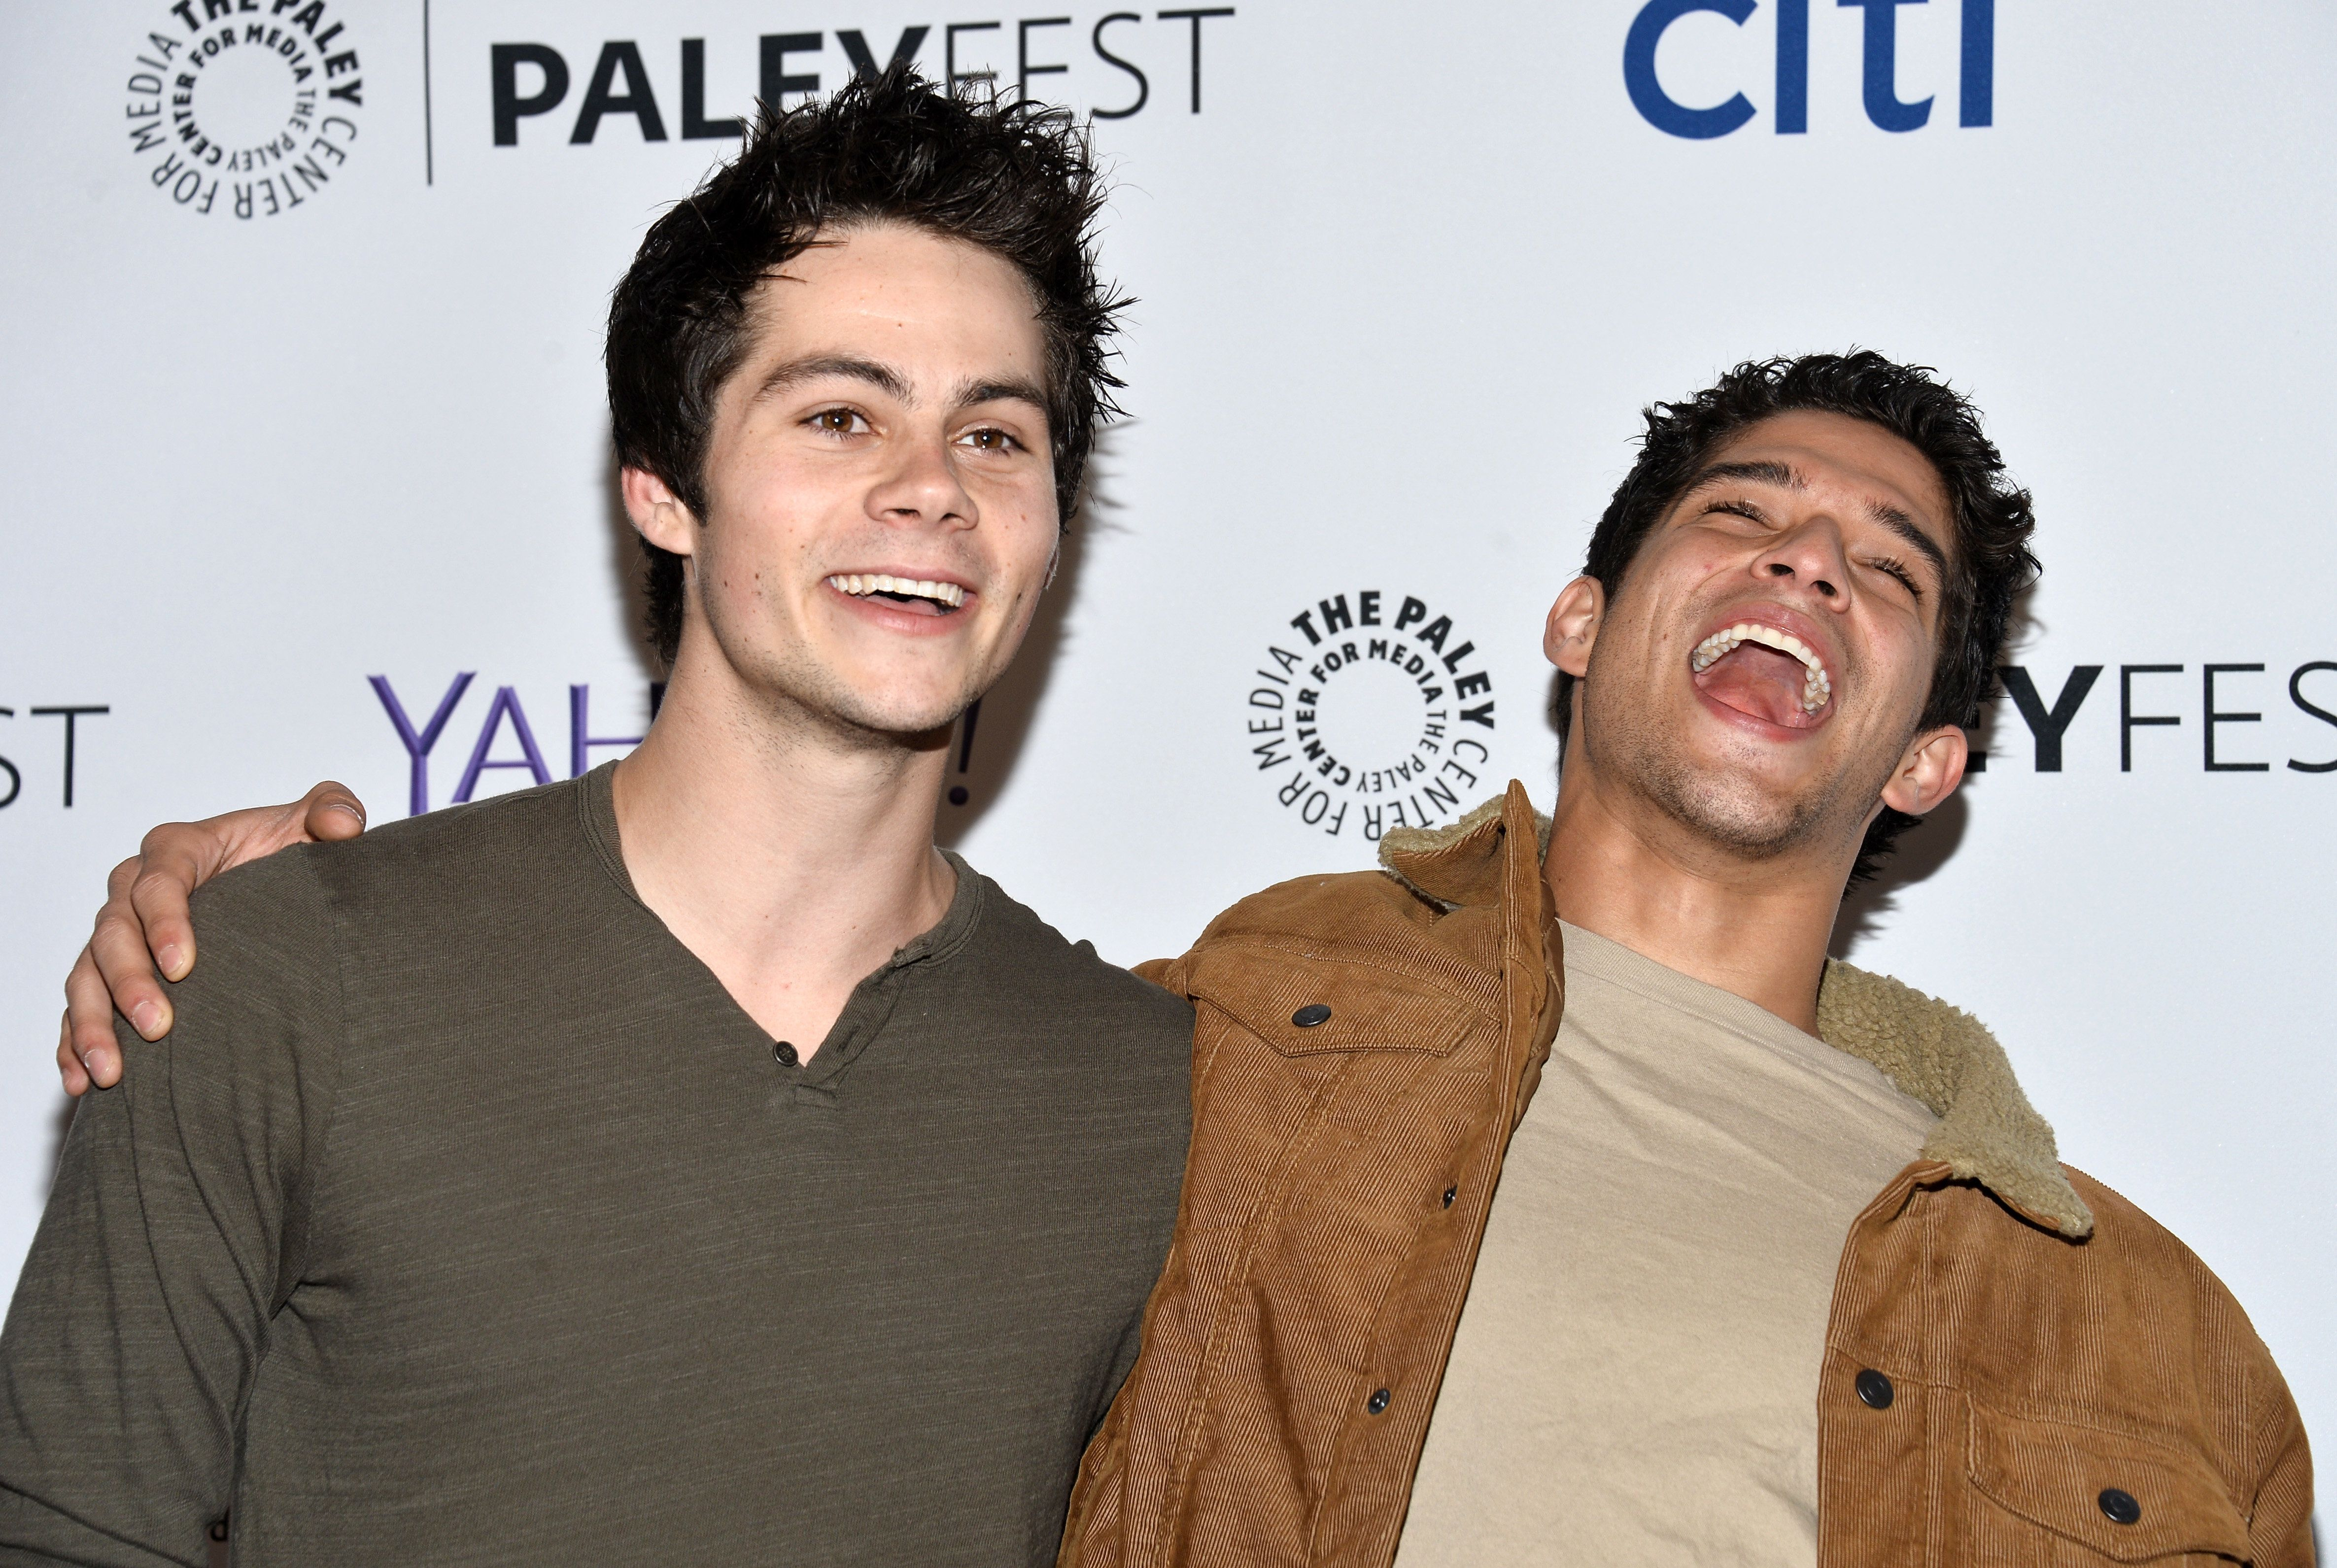 HOLLYWOOD, CA - MARCH 11:  Actors Dylan O'Brien (L) and Tyler Posey arrive at The Paley Center For Media's 32nd Annual PALEYFEST LA - 'Teen Wolf' event at the Dolby Theatre on March 11, 2015 in Hollywood, California.  (Photo by Amanda Edwards/WireImage)